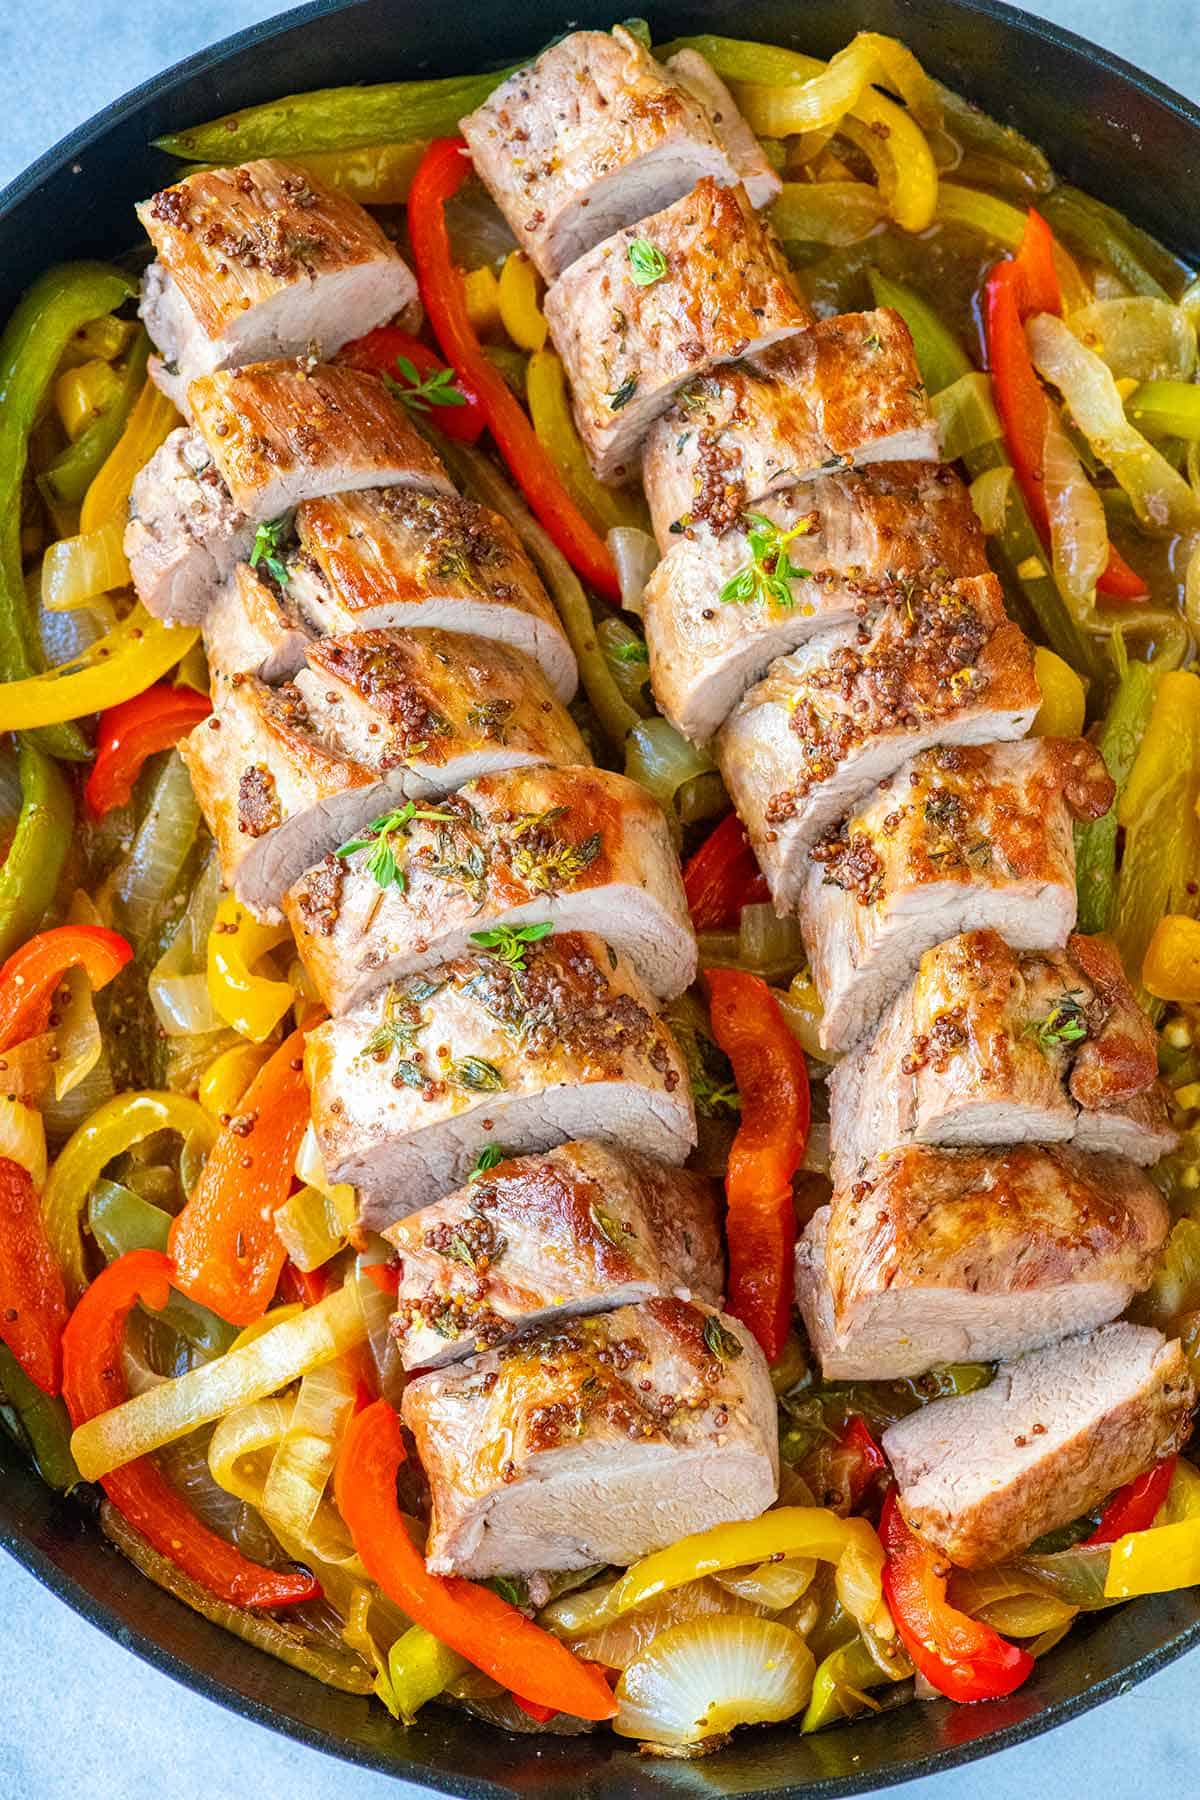 Sliced Pork Tenderloin with Peppers and Onions